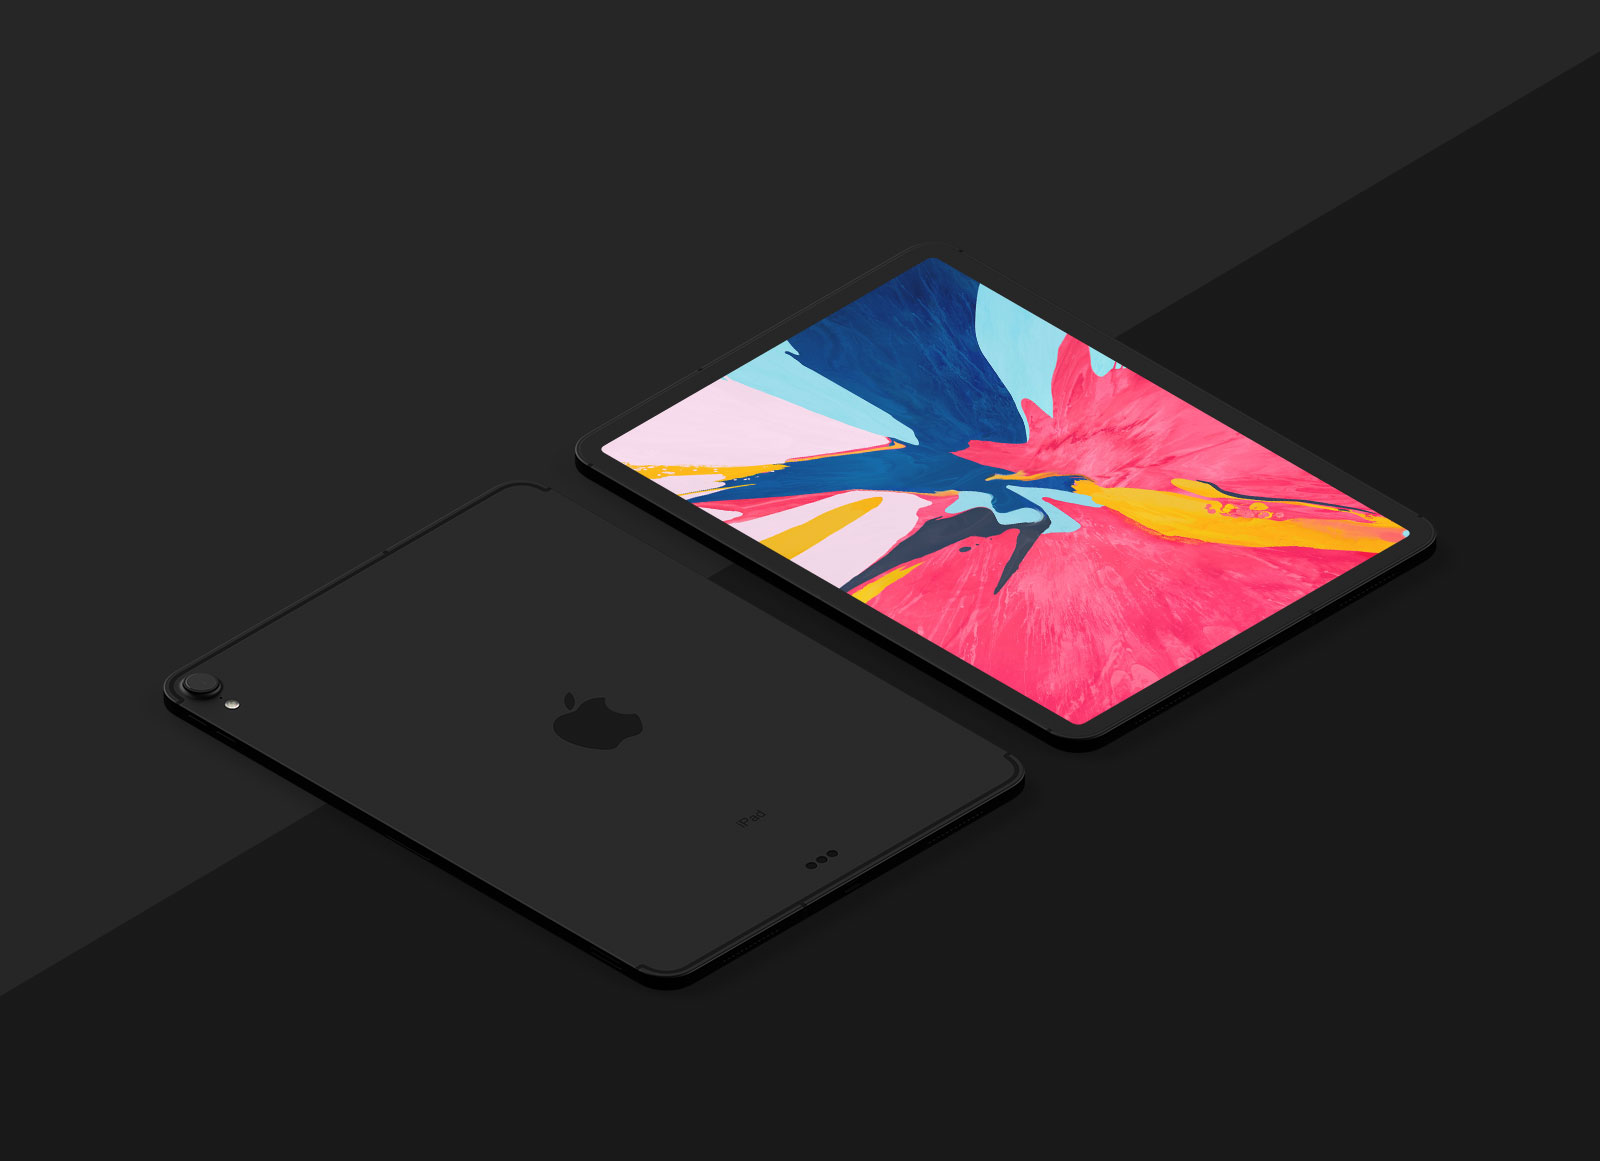 Free-New-iPad-Pro-2018-Mockup-PSD-in-Perspective-Vew-5